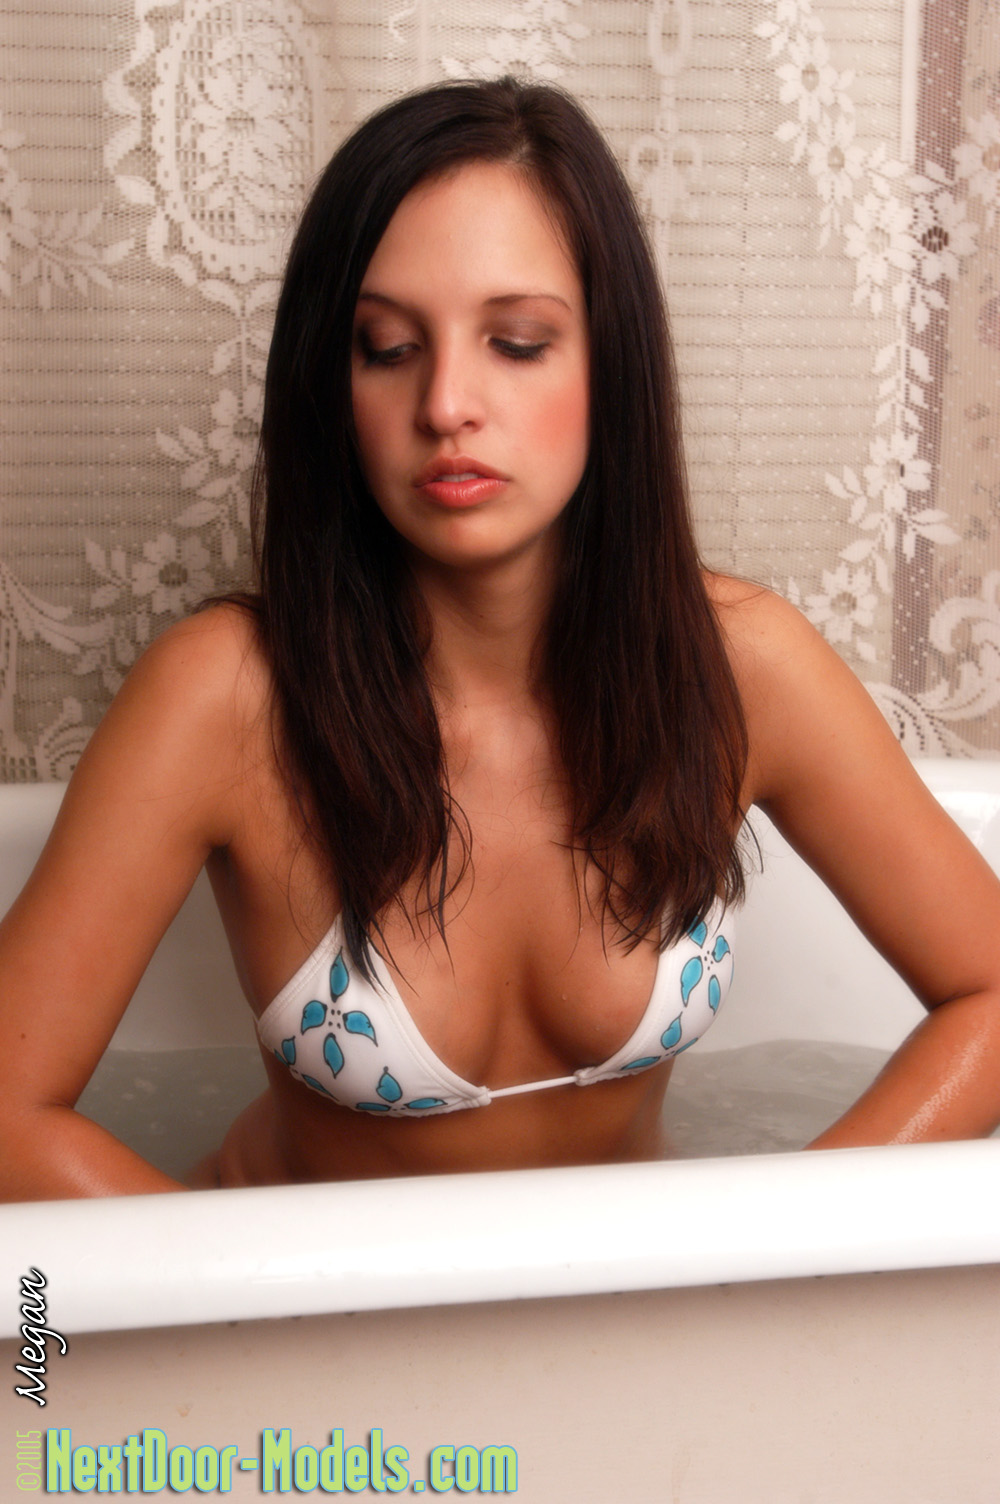 Cute Megan in the Bath wearing just a Bikini ? She's soaking wet!